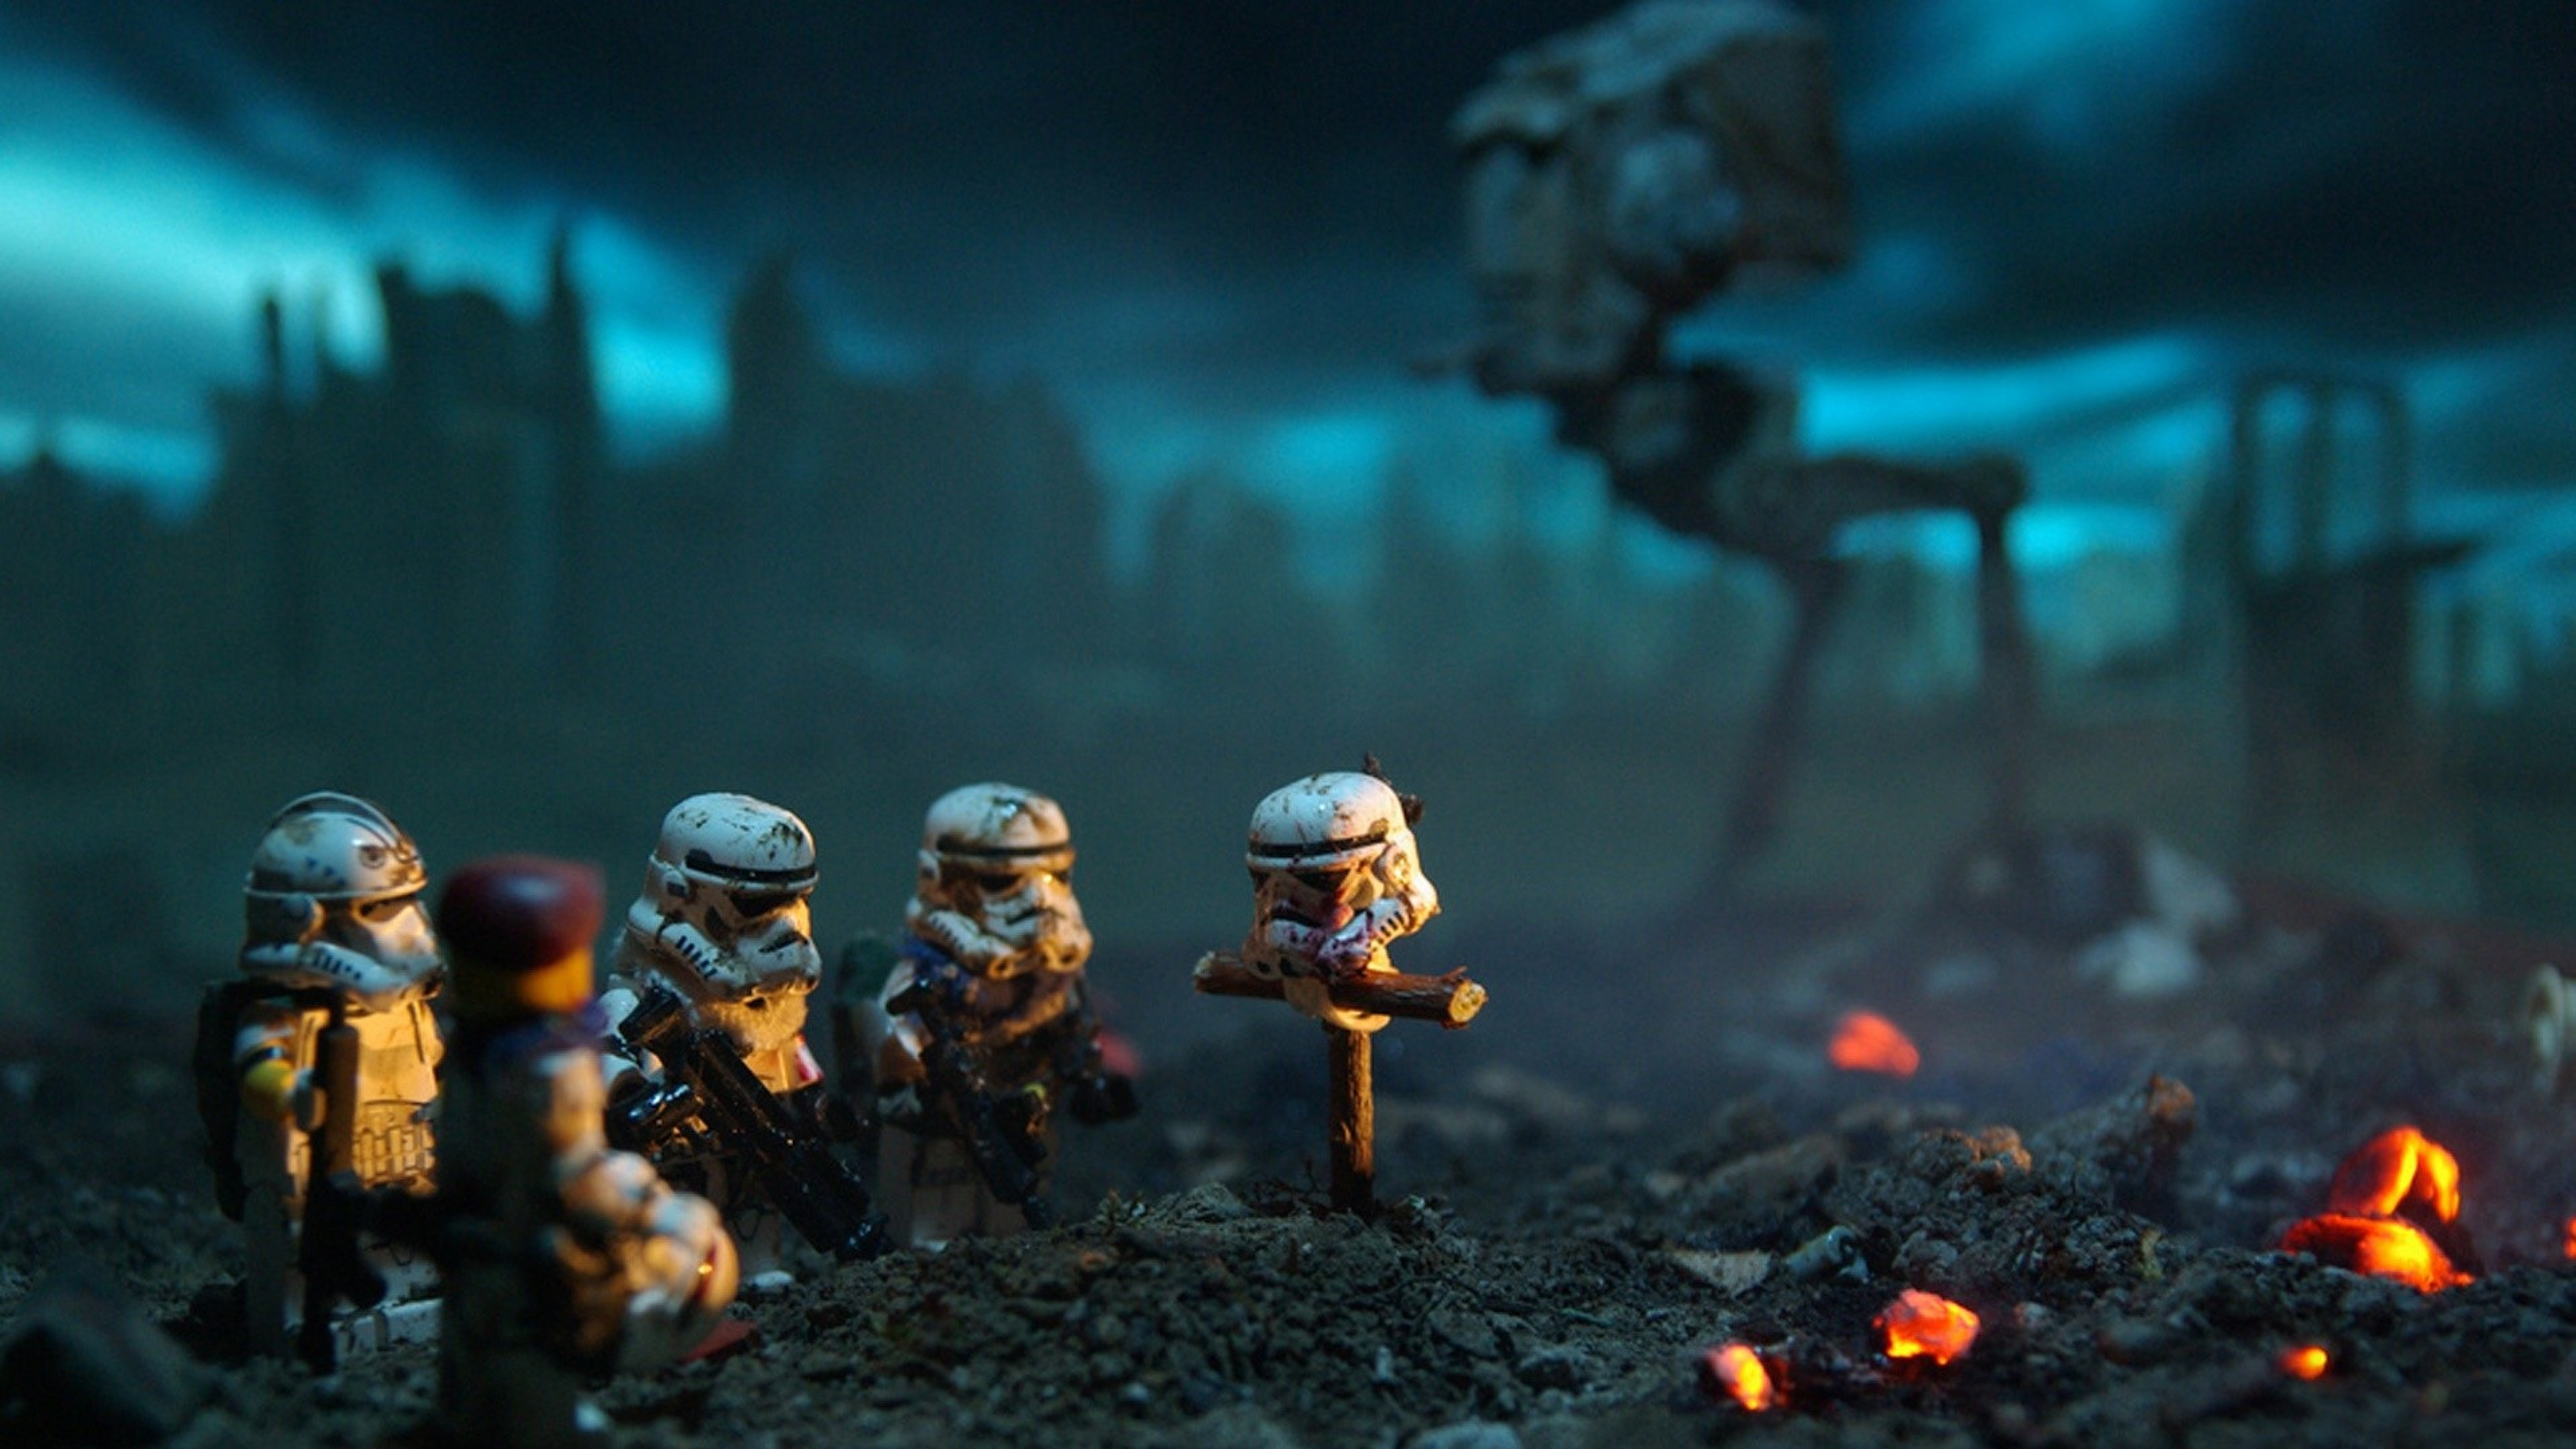 Free Lego Star Wars Hd Wallpaper For Desktop And Mobiles 4k